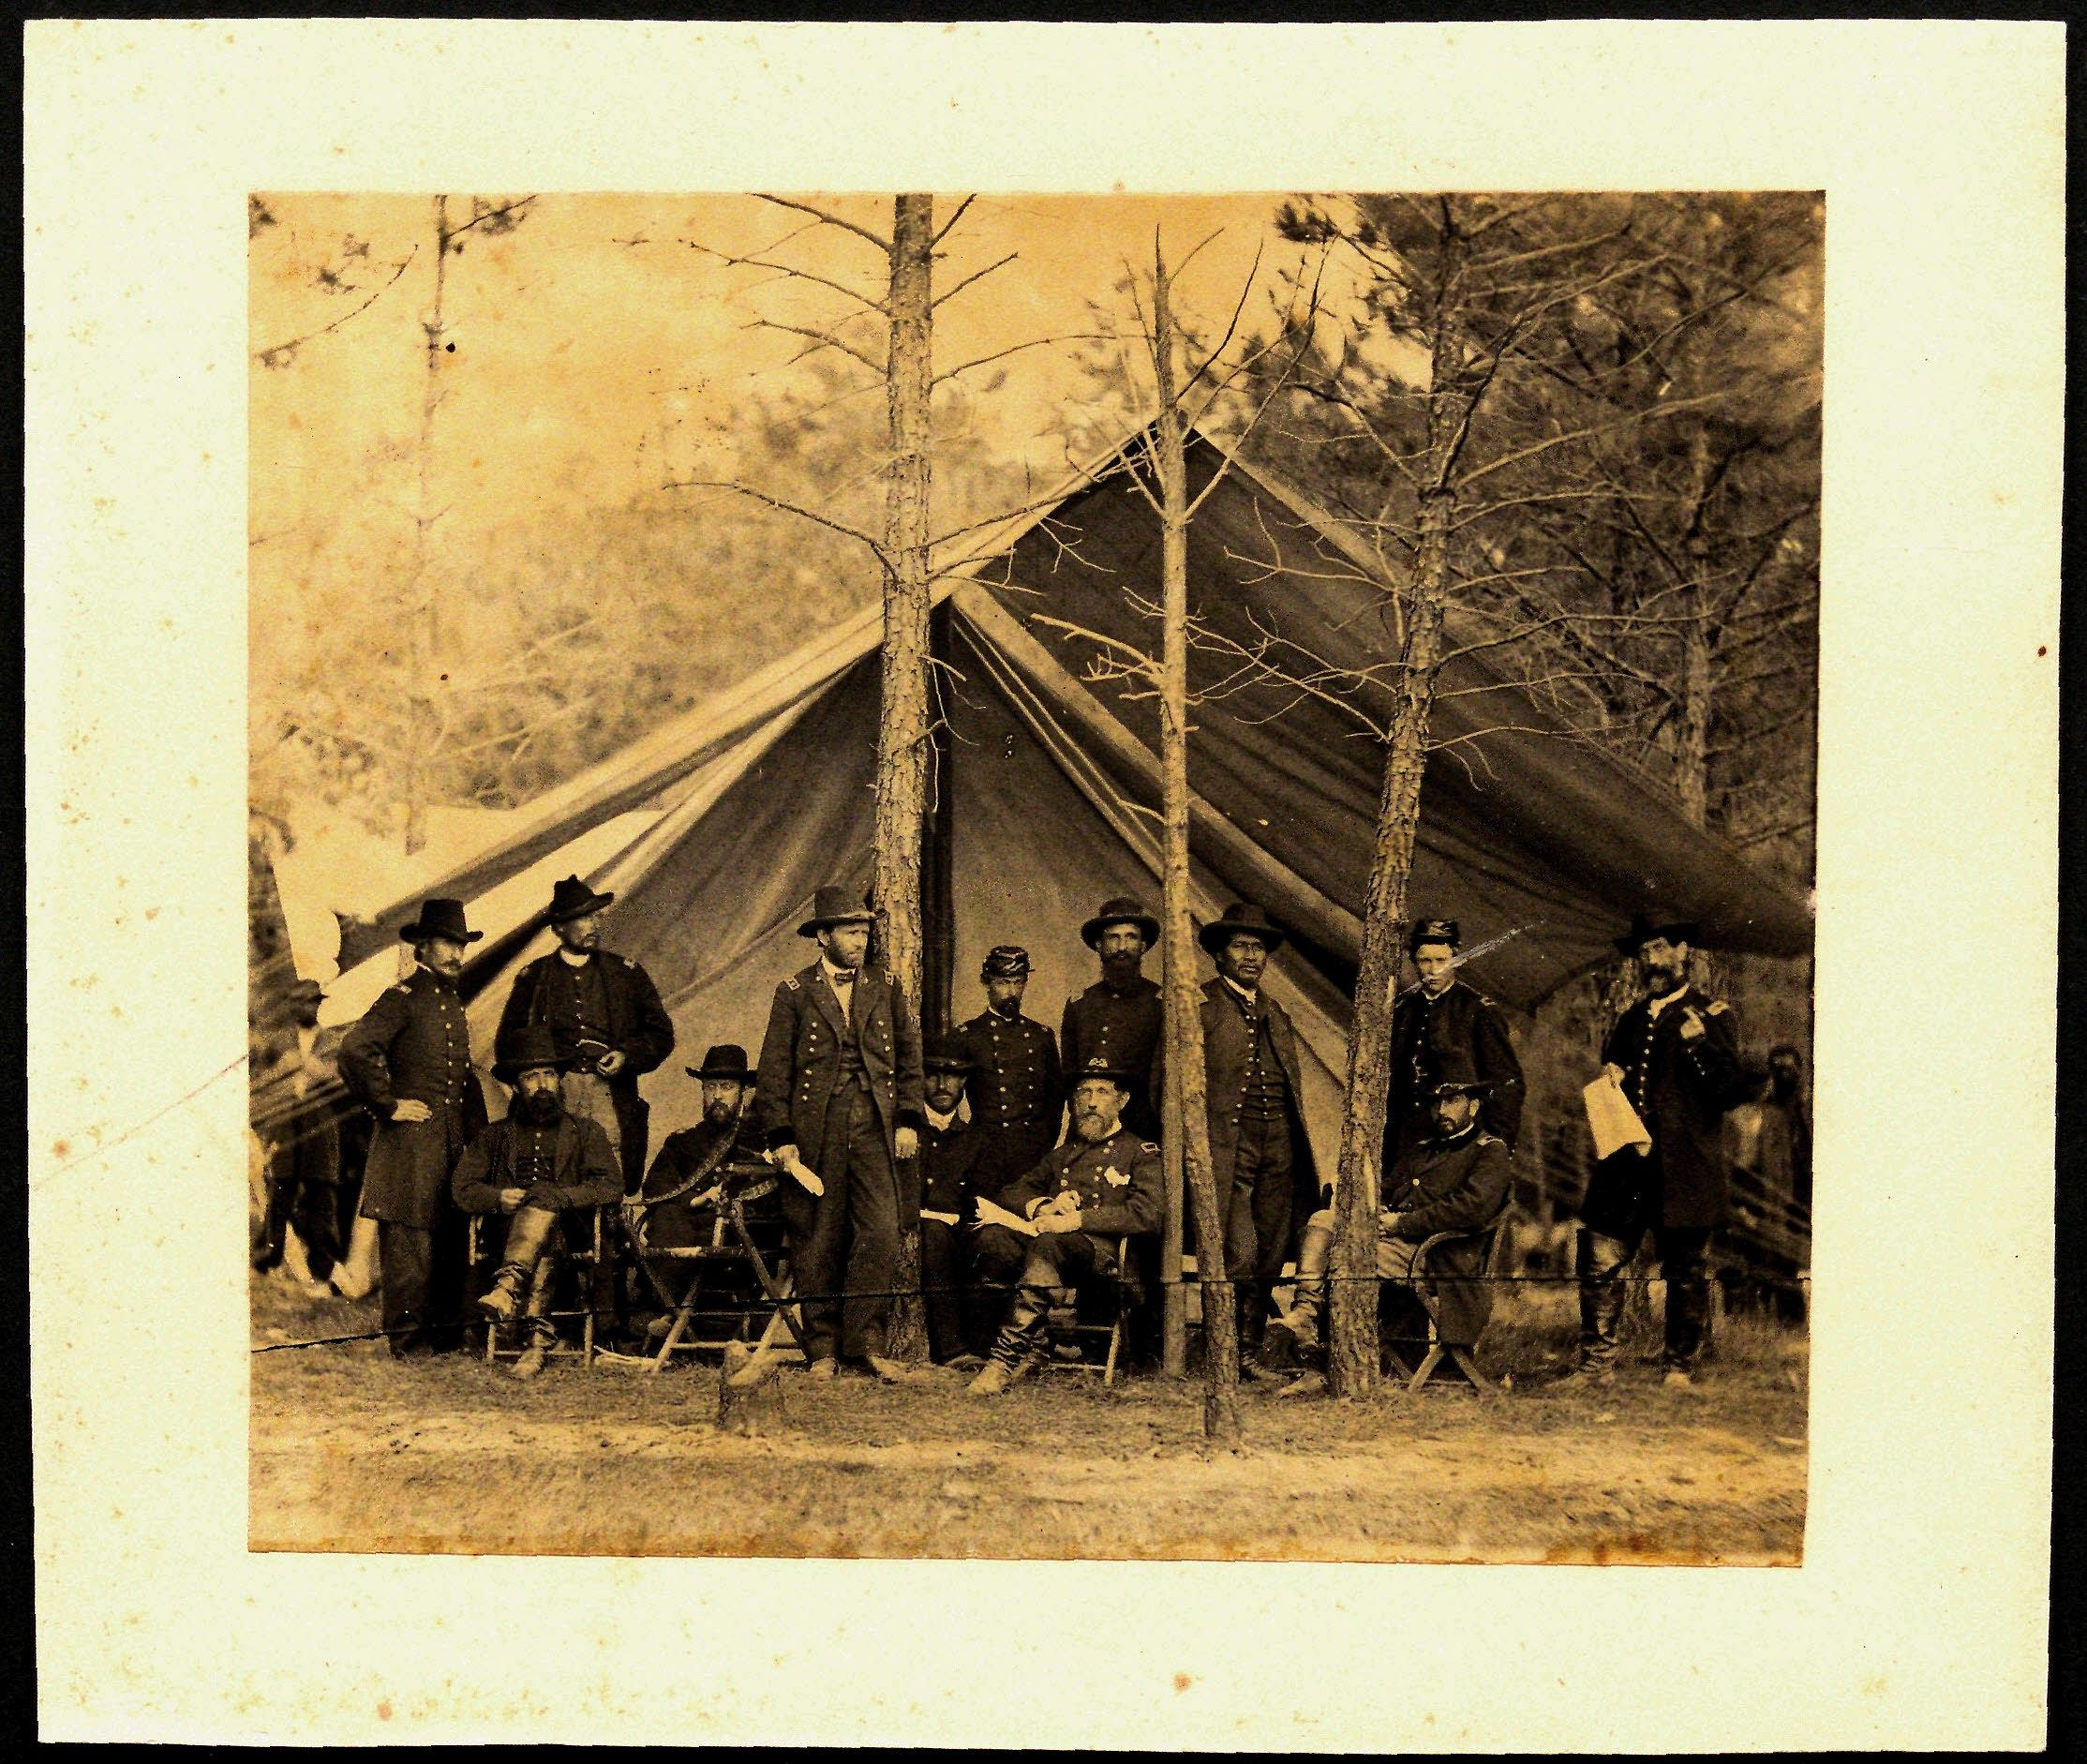 Ulysses S. Grant and staff after Battle of the Wilderness, ca. 1864 (Gilder Lehrman Institute GLC00588)